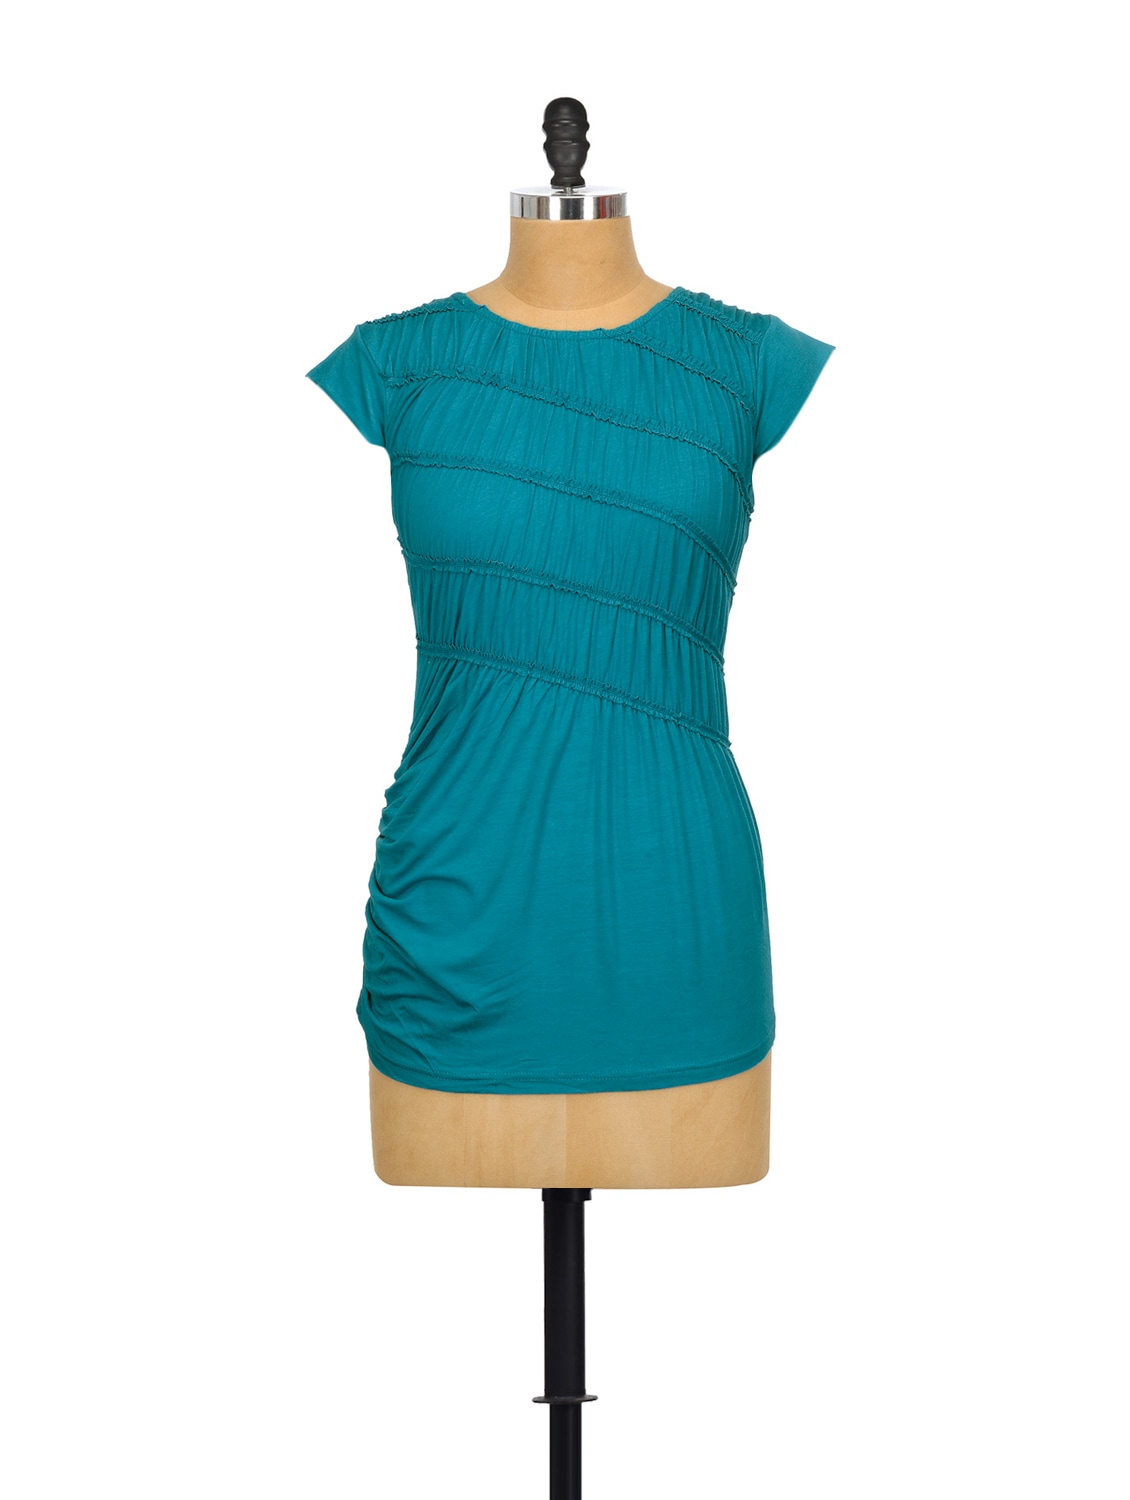 Bravo Blue Cotton Top - Glam And Luxe